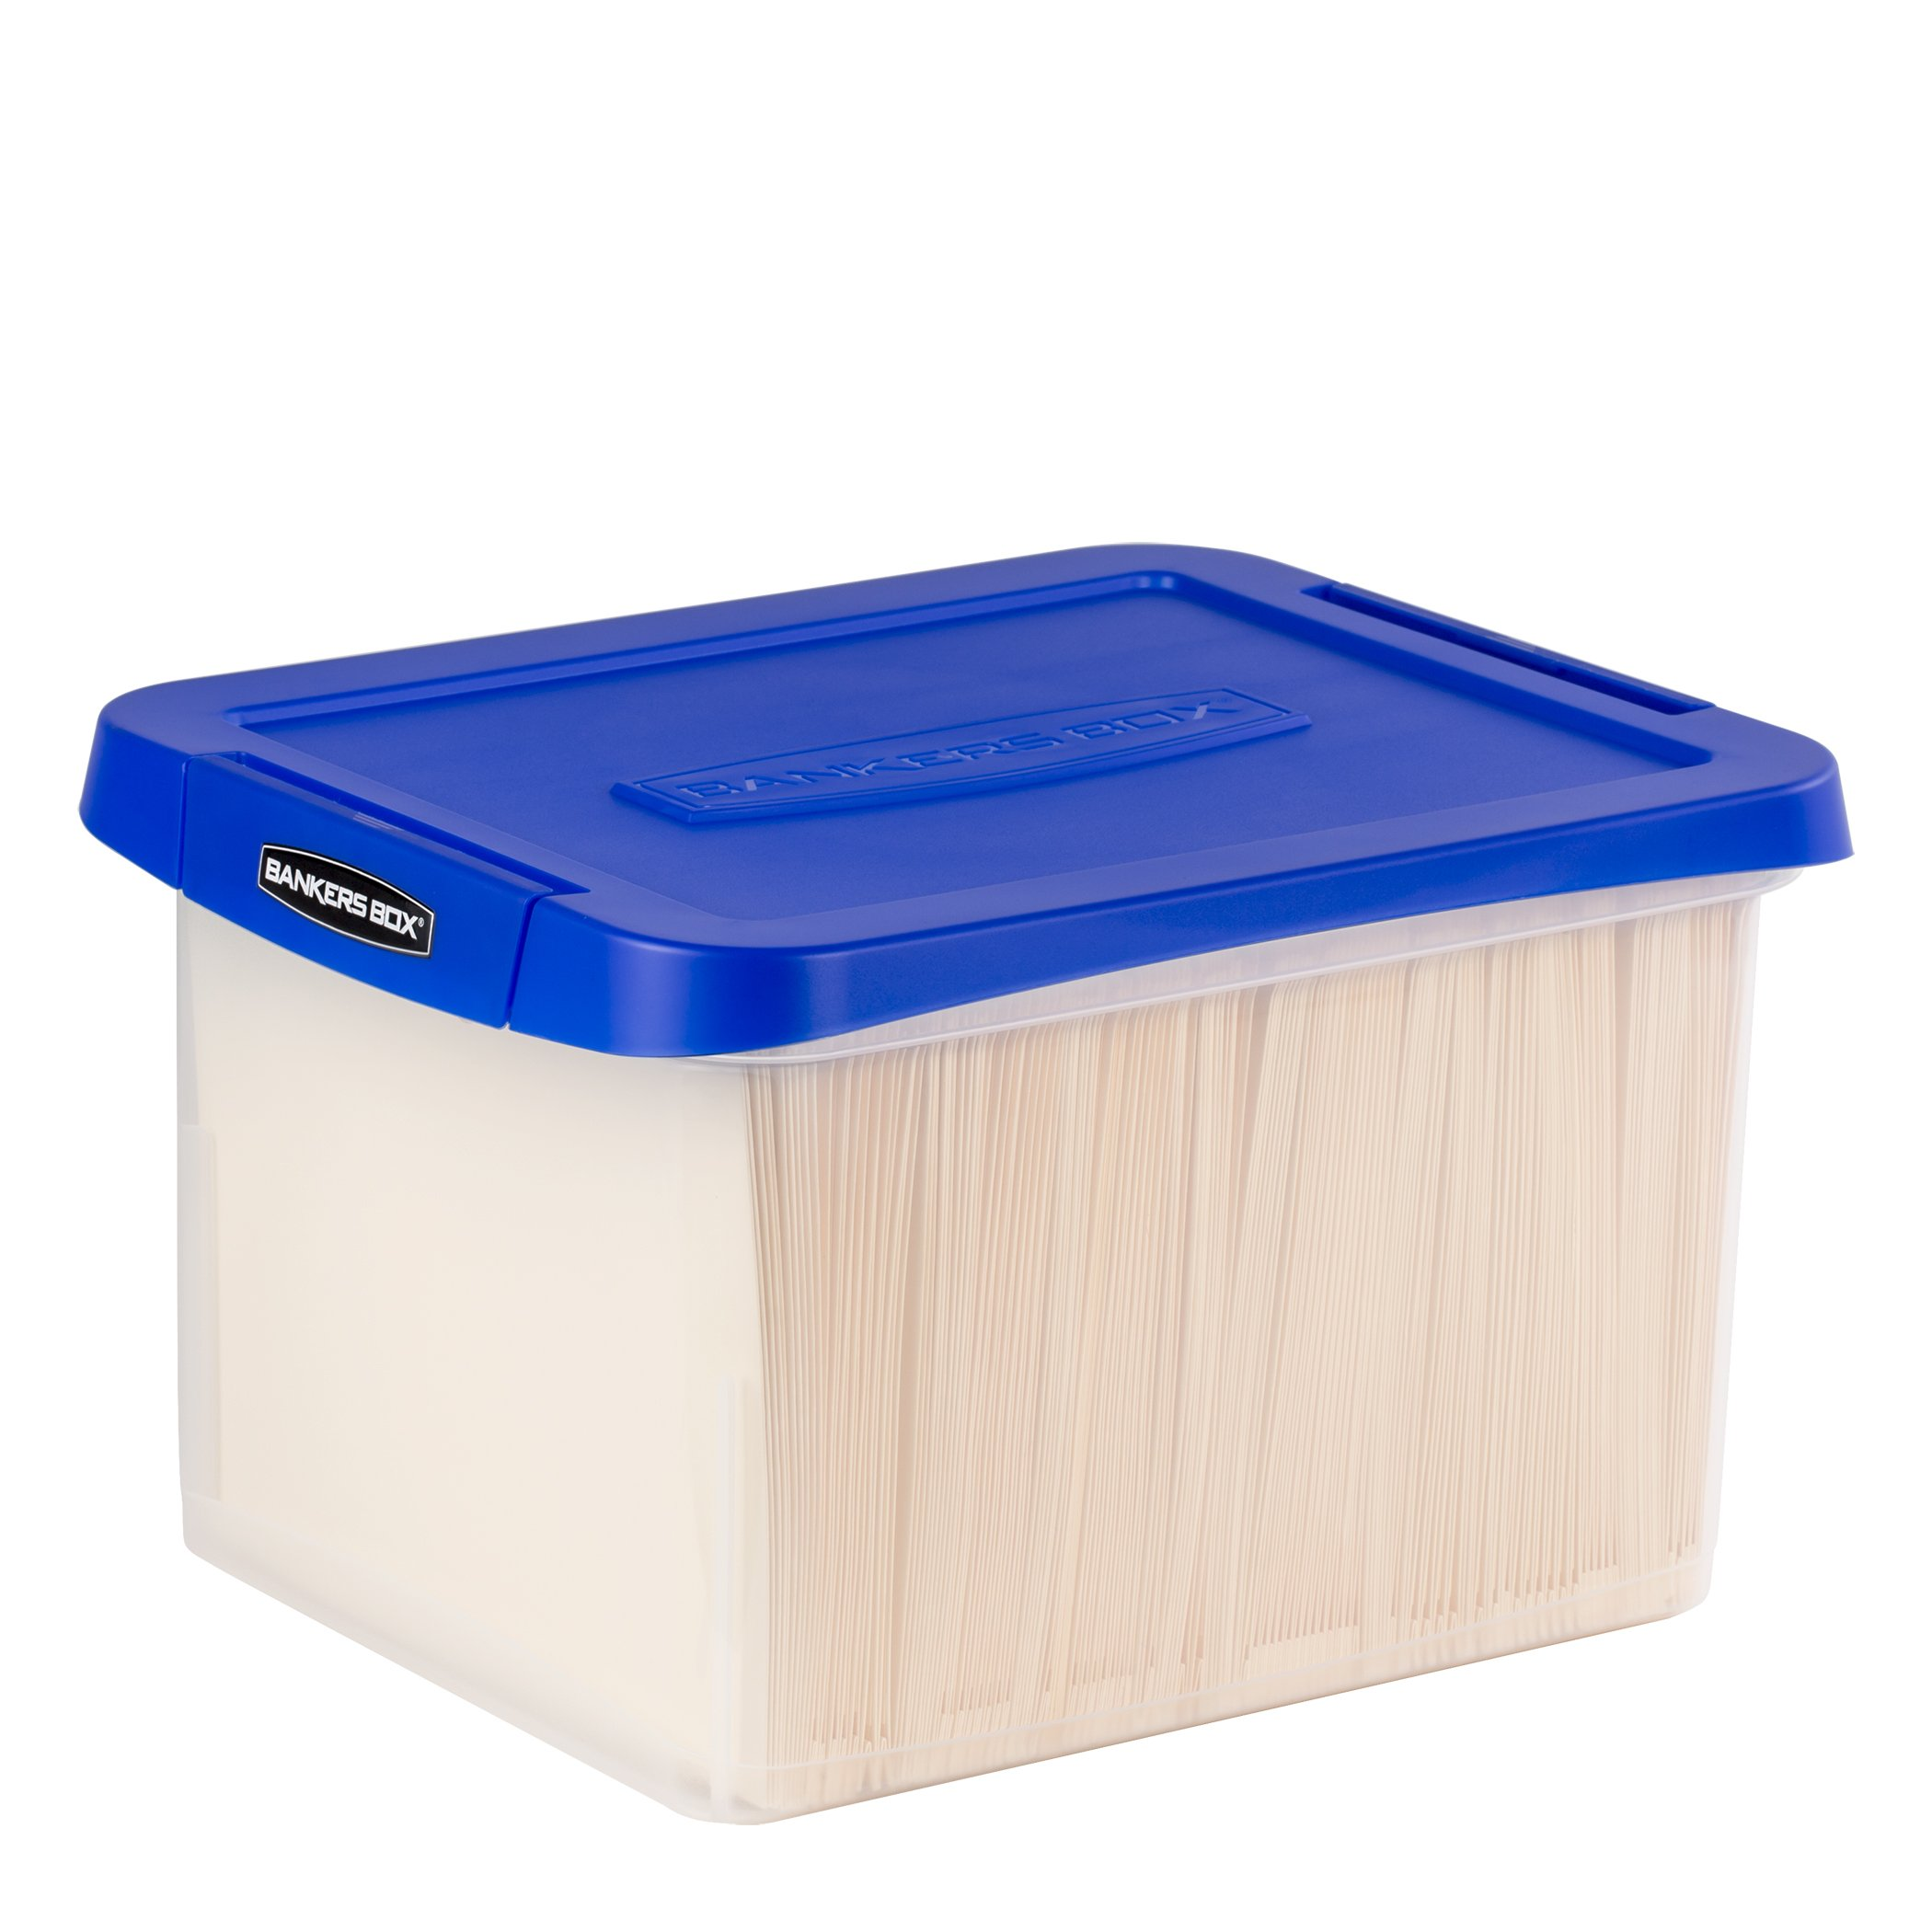 Bankers Box Heavy Duty Letter/Legal Plastic File Box (0086205)